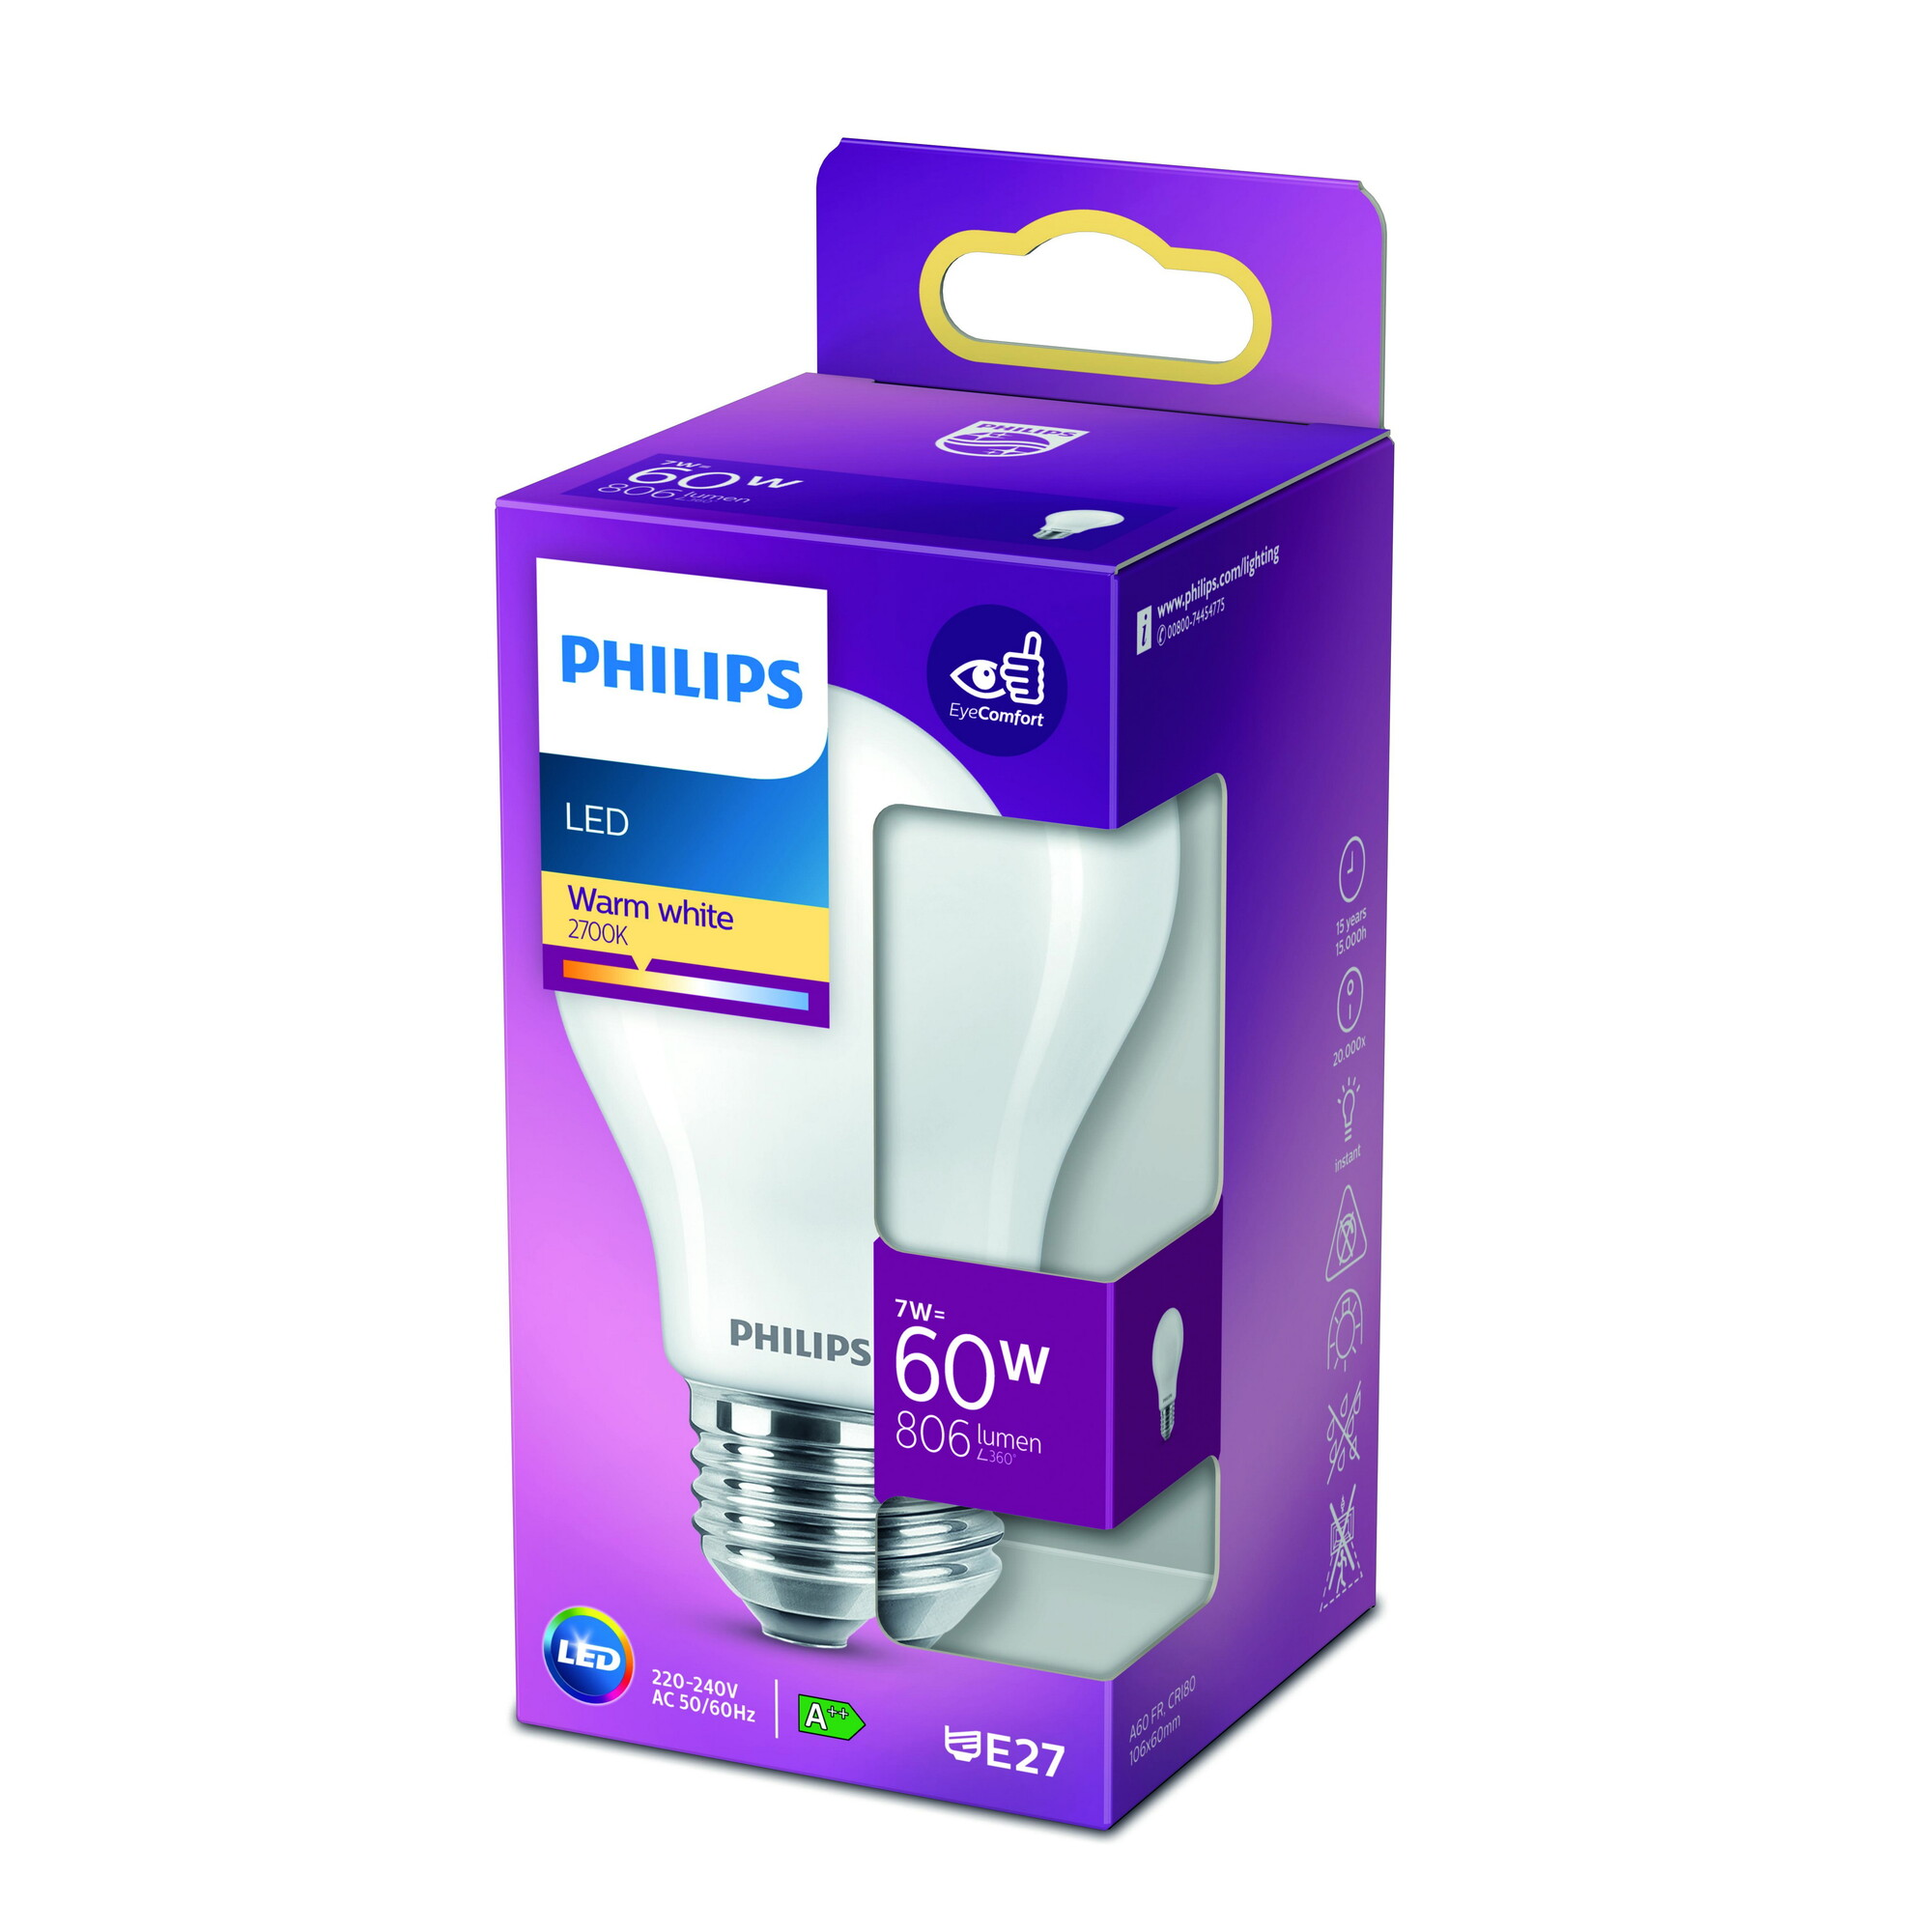 Philips LED classic E27 7W 806lm 2700K Lamp Frosted